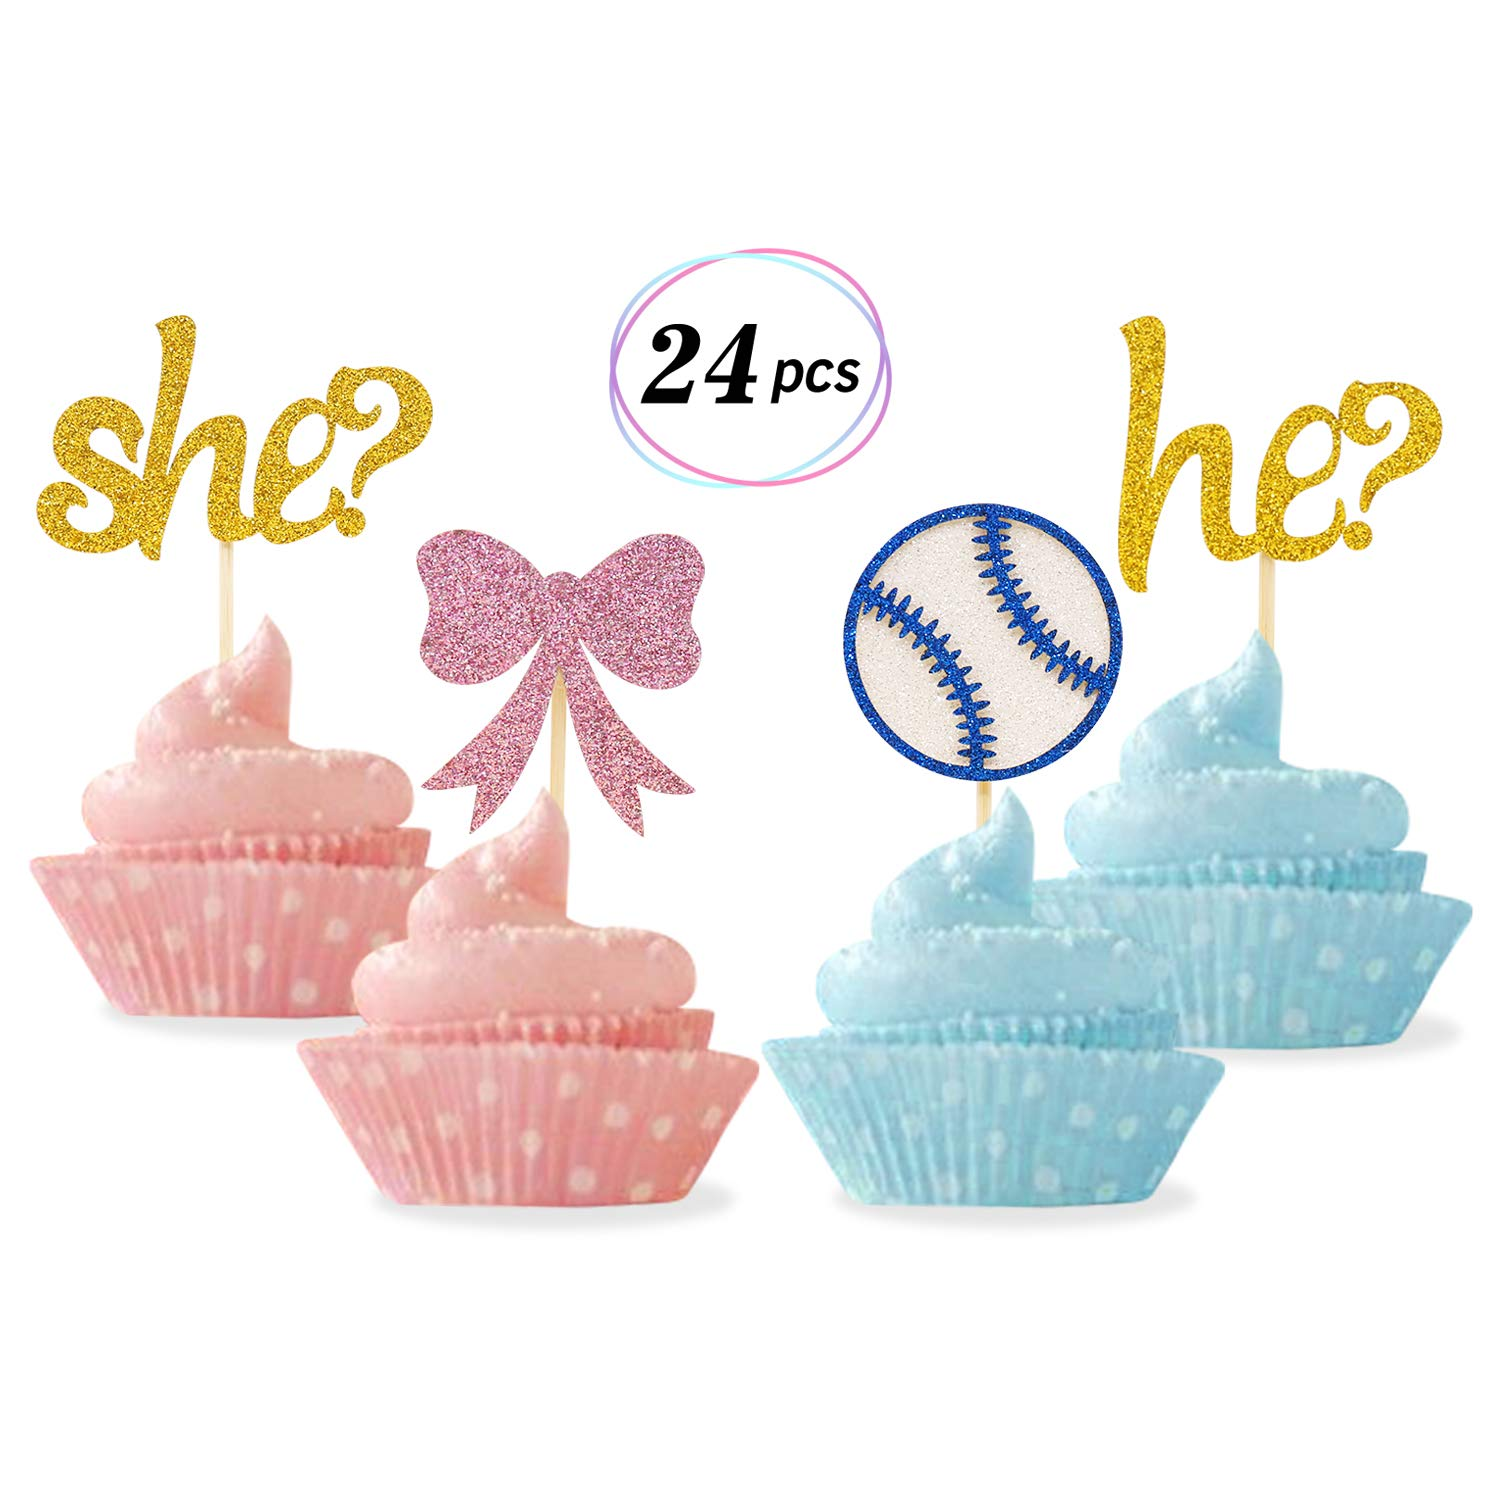 Cupcake toppers Baby shower pregnancy reveal decorations Baby cupcake toppers cupcake toppers pregnancy reveal